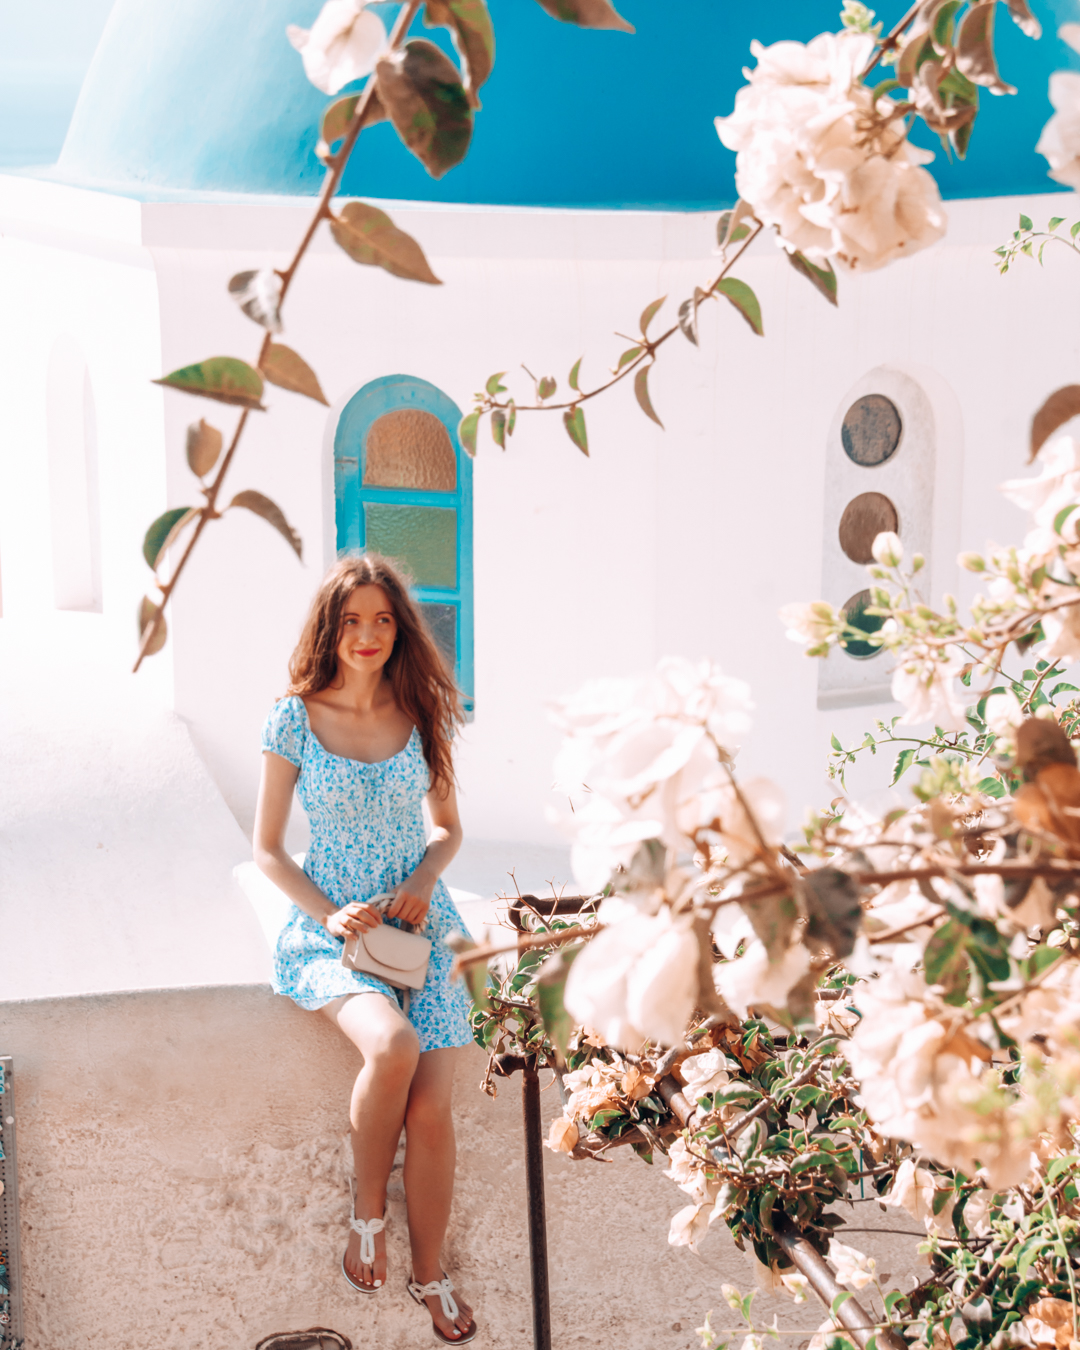 Blue domes, flowers, and a girl in Santorini